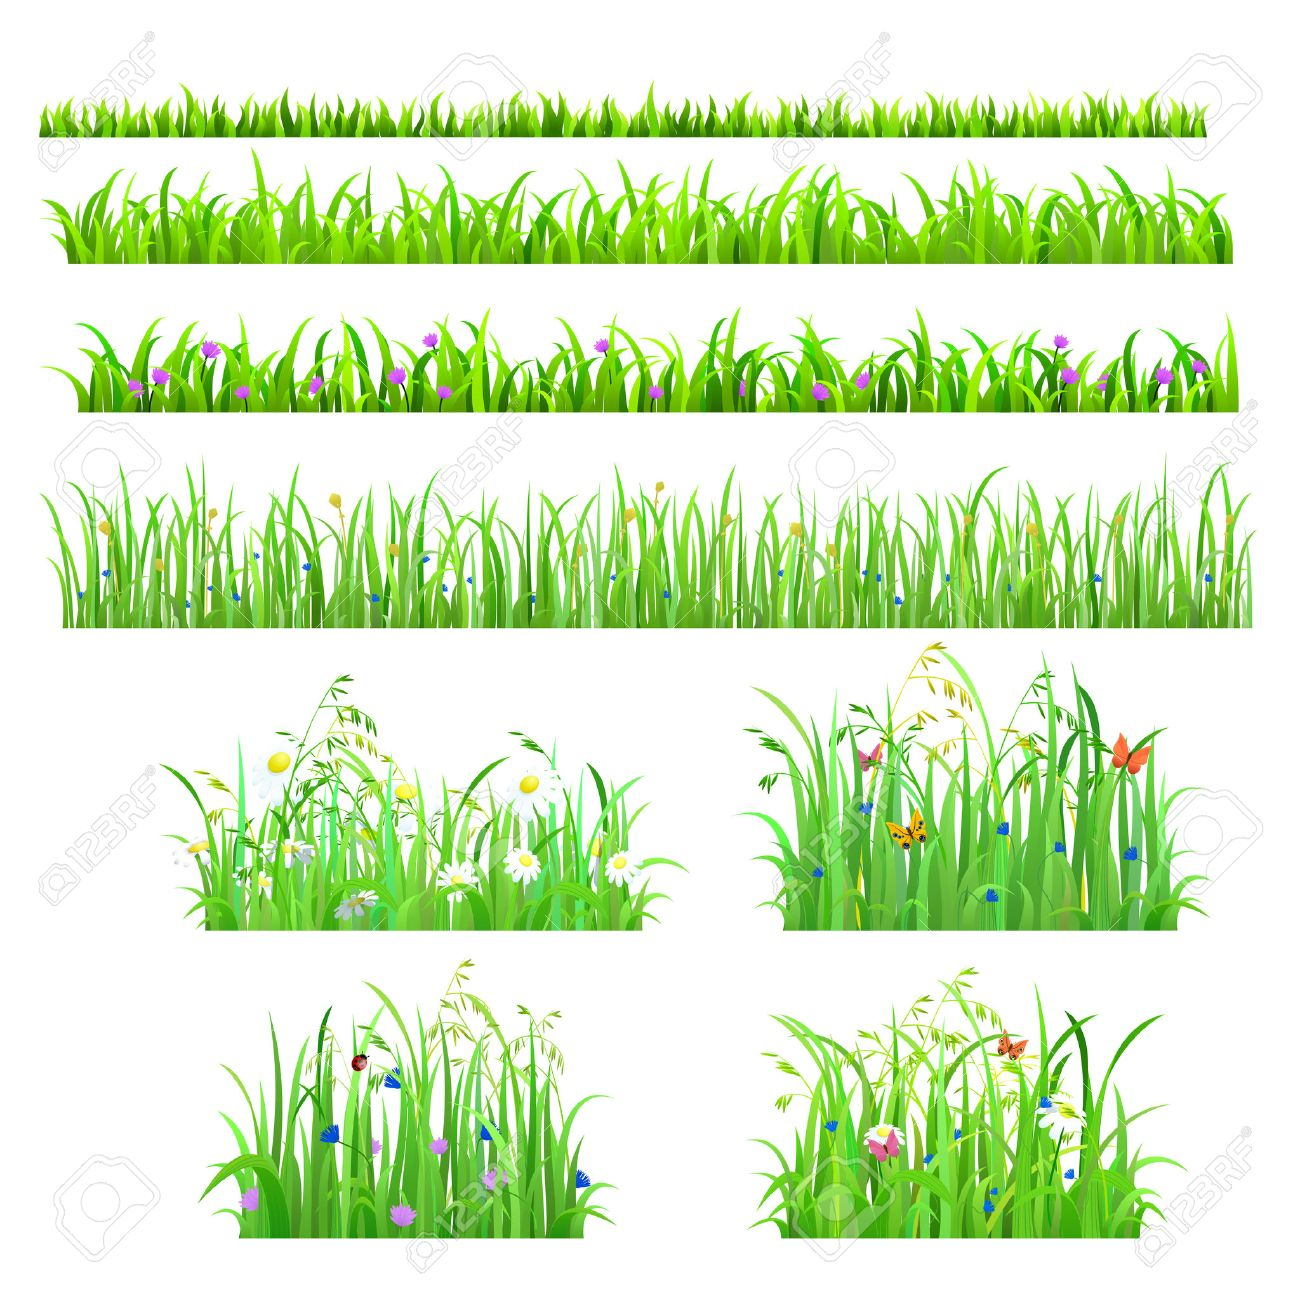 Set of 8 seamless nice shiny fresh flower butterfly grass lines isolated background. Nature spring summer backgrounds collection. Stock Vector - 48578765